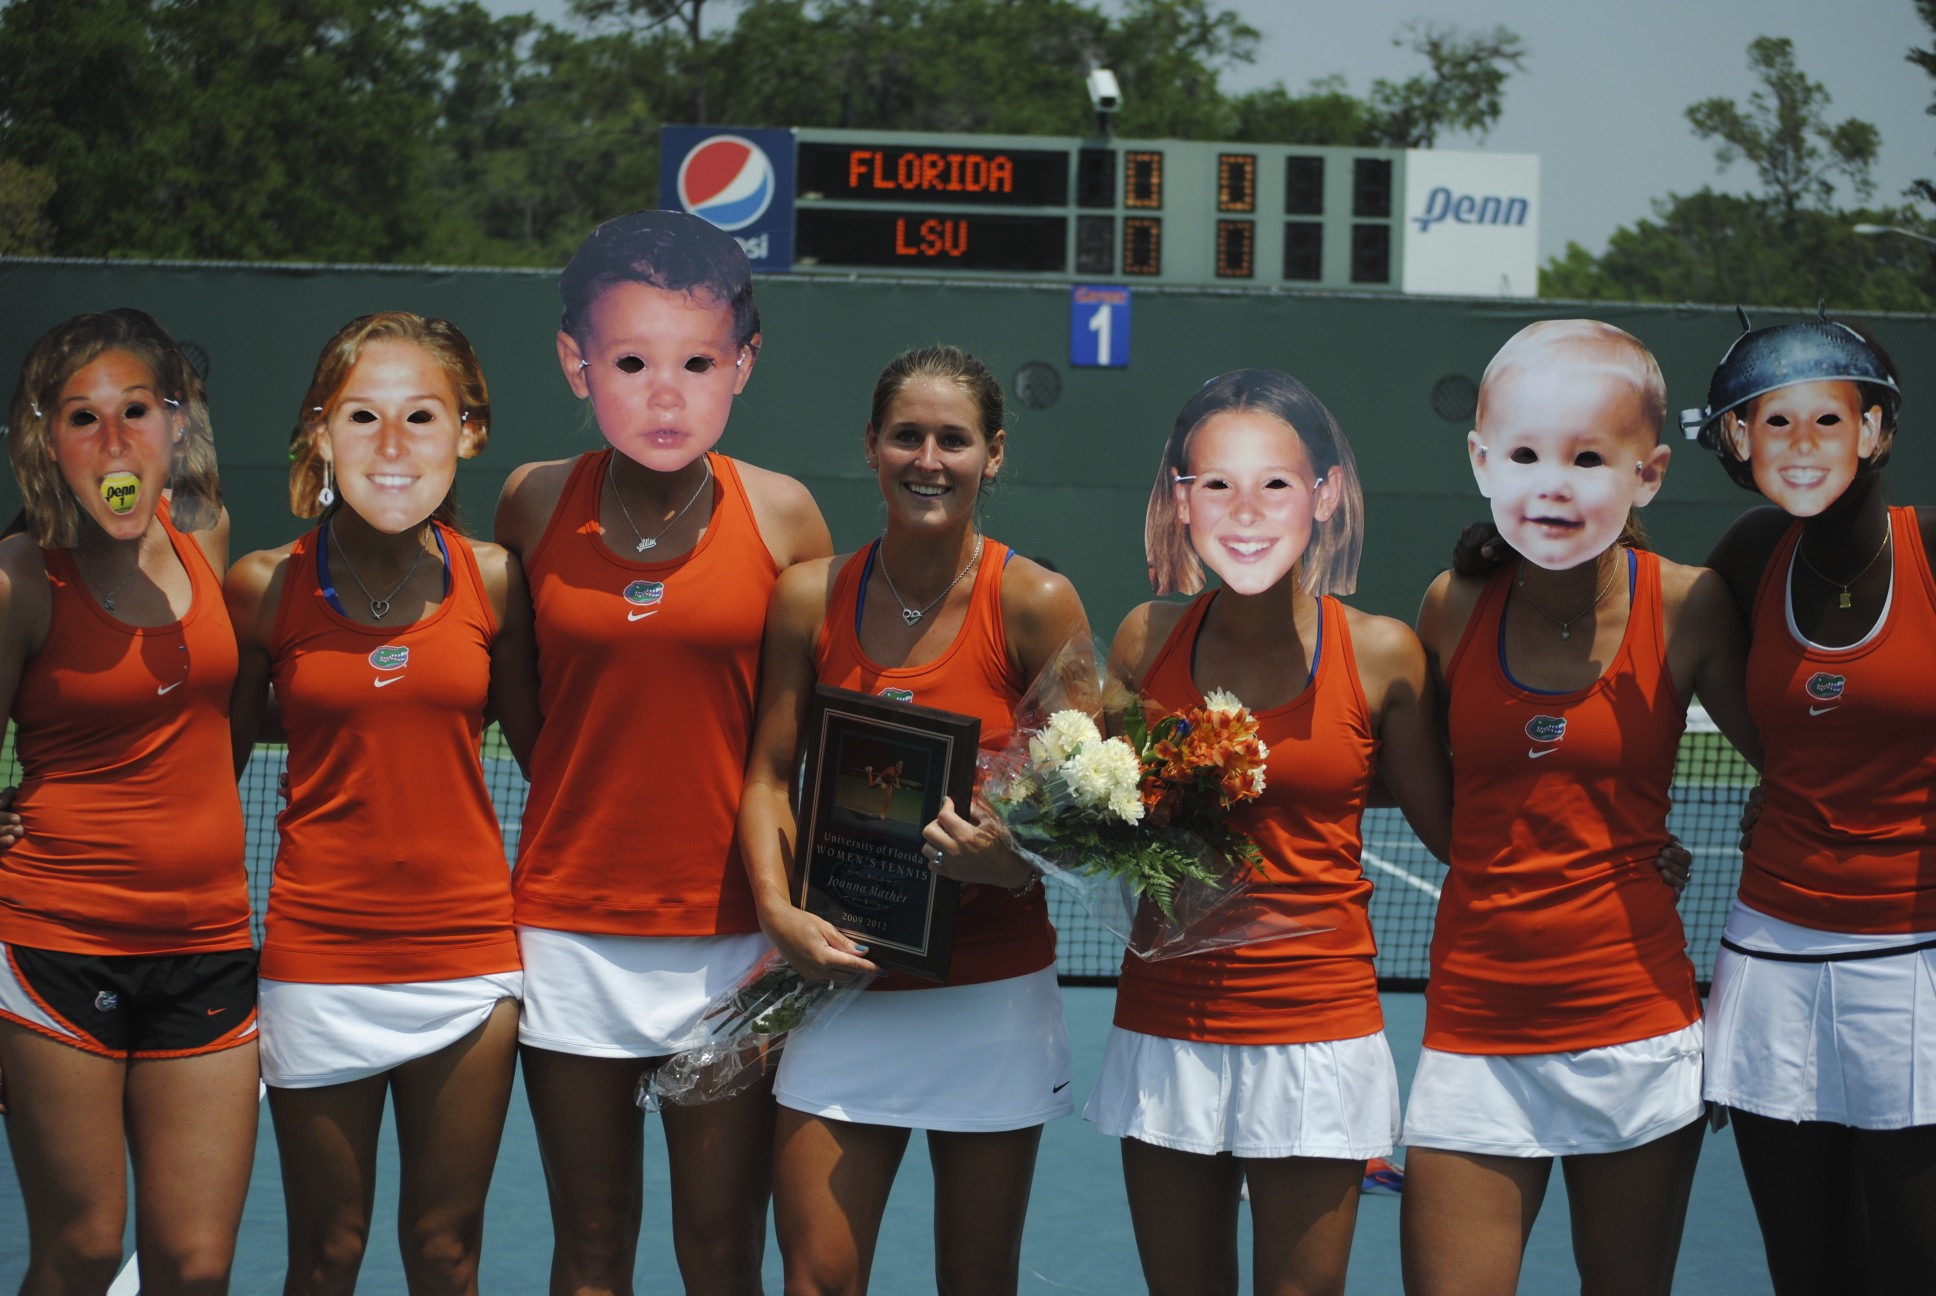 The Florida Women's tennis team celebrates Joanna Mather's Senior day prior to the match wearing masks of the Senior at different stages of her playing career thus far.